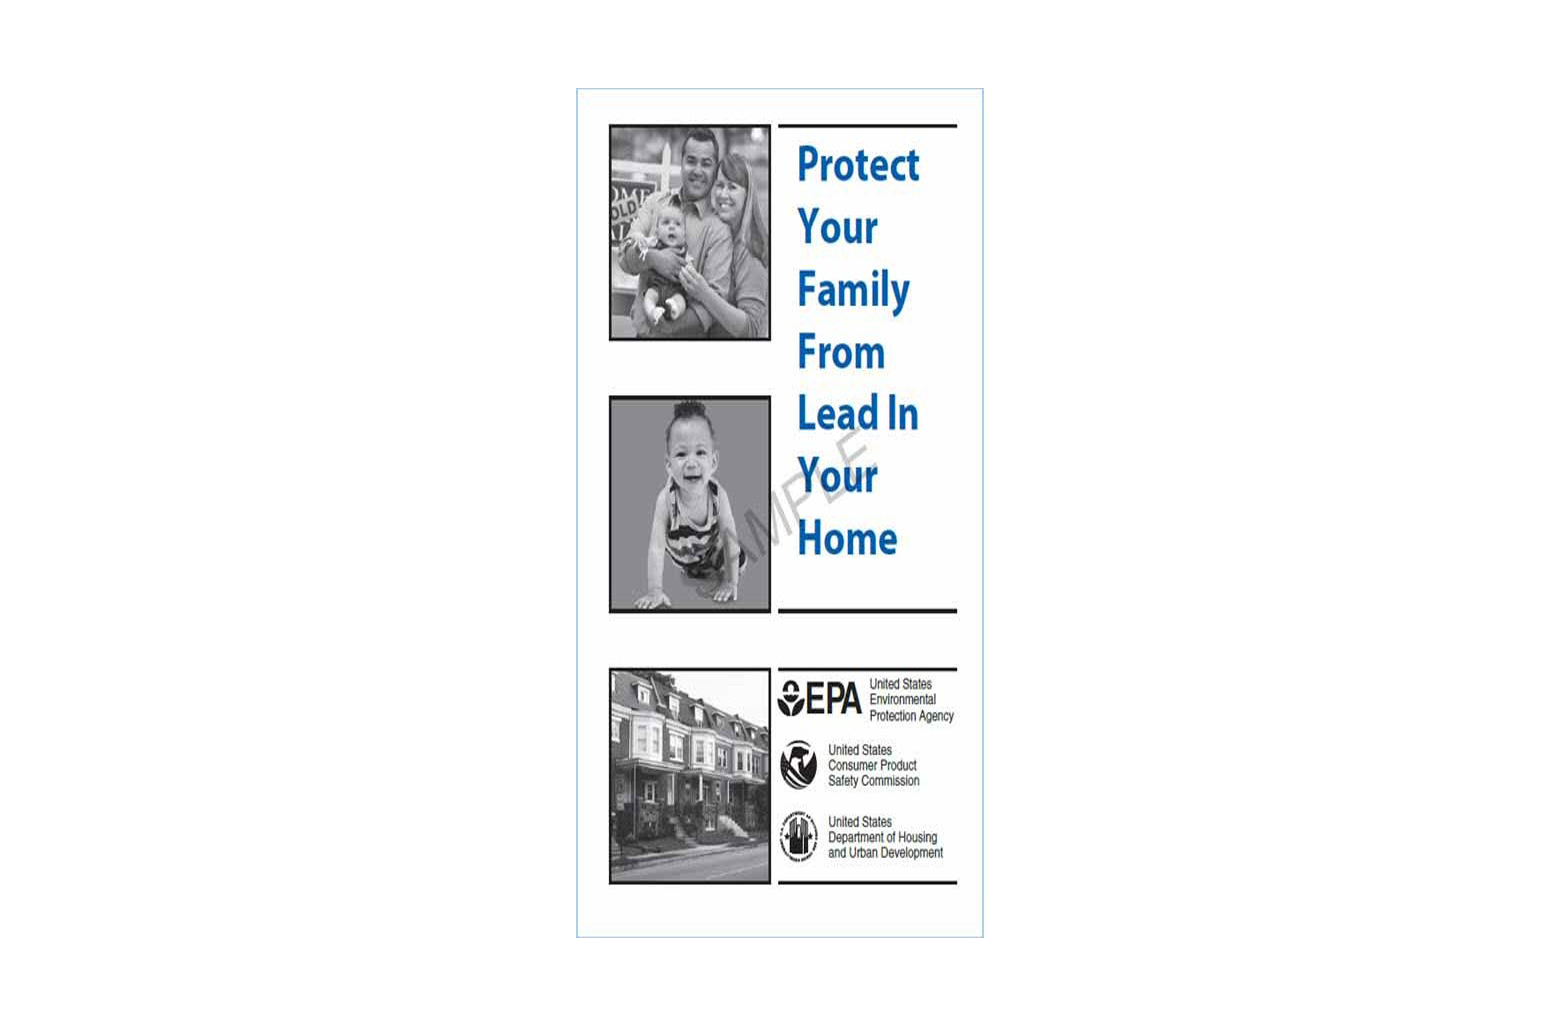 protect your family from lead in your home